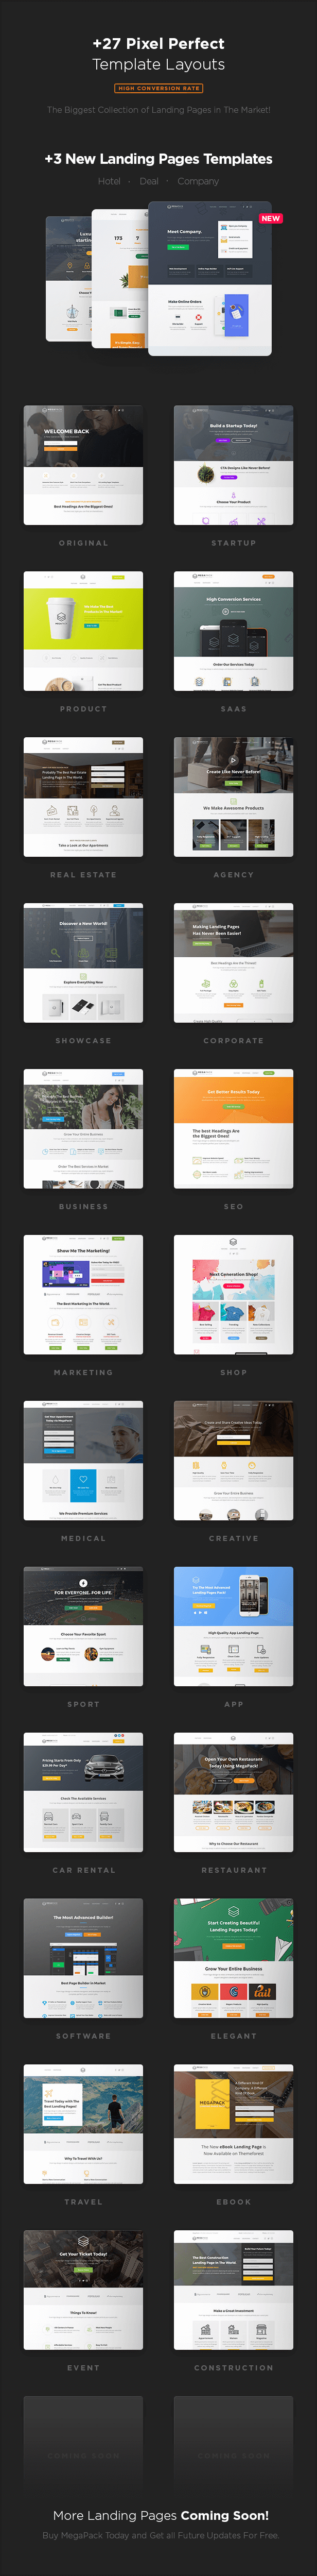 pages - MEGAPACK – Marketing HTML Landing Pages Pack + PixFort Page Builder Access